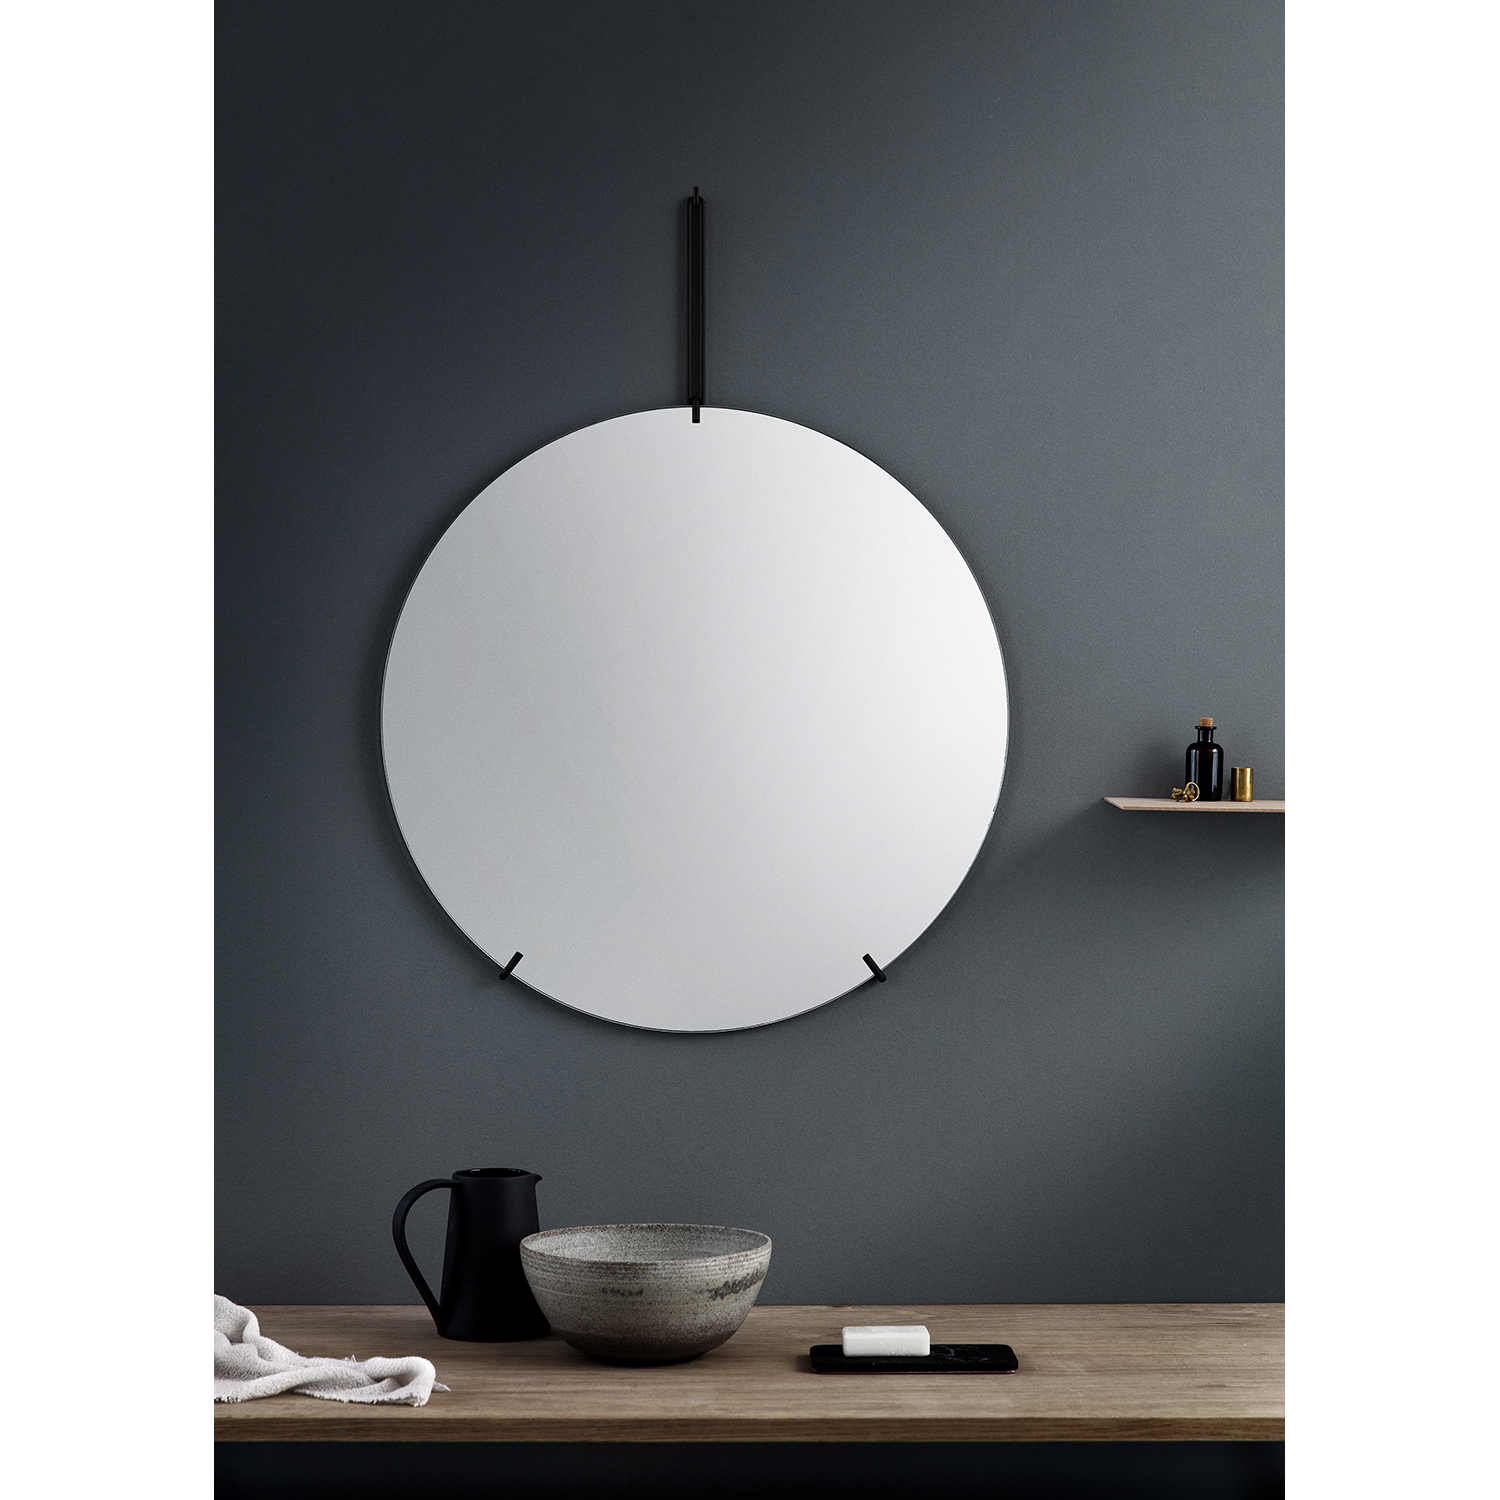 Wall Mirror spegel M, svart